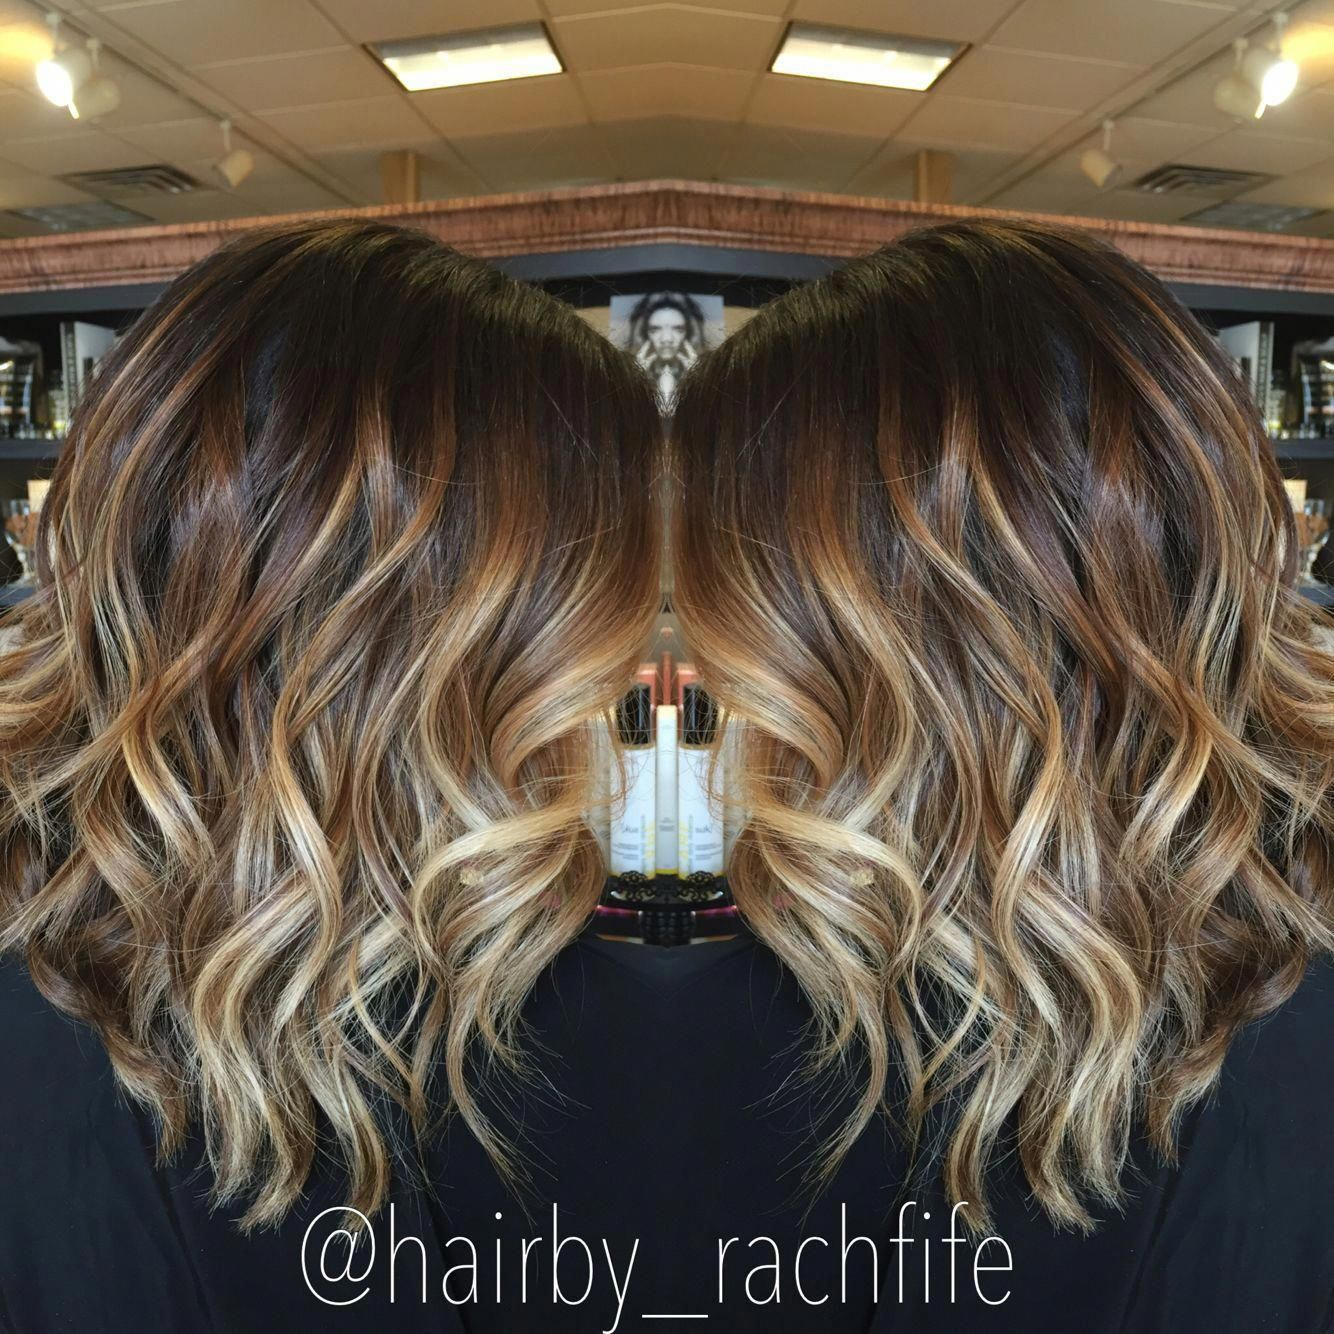 Stretched Root Balayage Ombre Highlights Hair By Rachel Fife Sara Fraraccio Salon In Akron Ohio Ombrebobh Short Hair Balayage Balayage Hair Short Wavy Hair